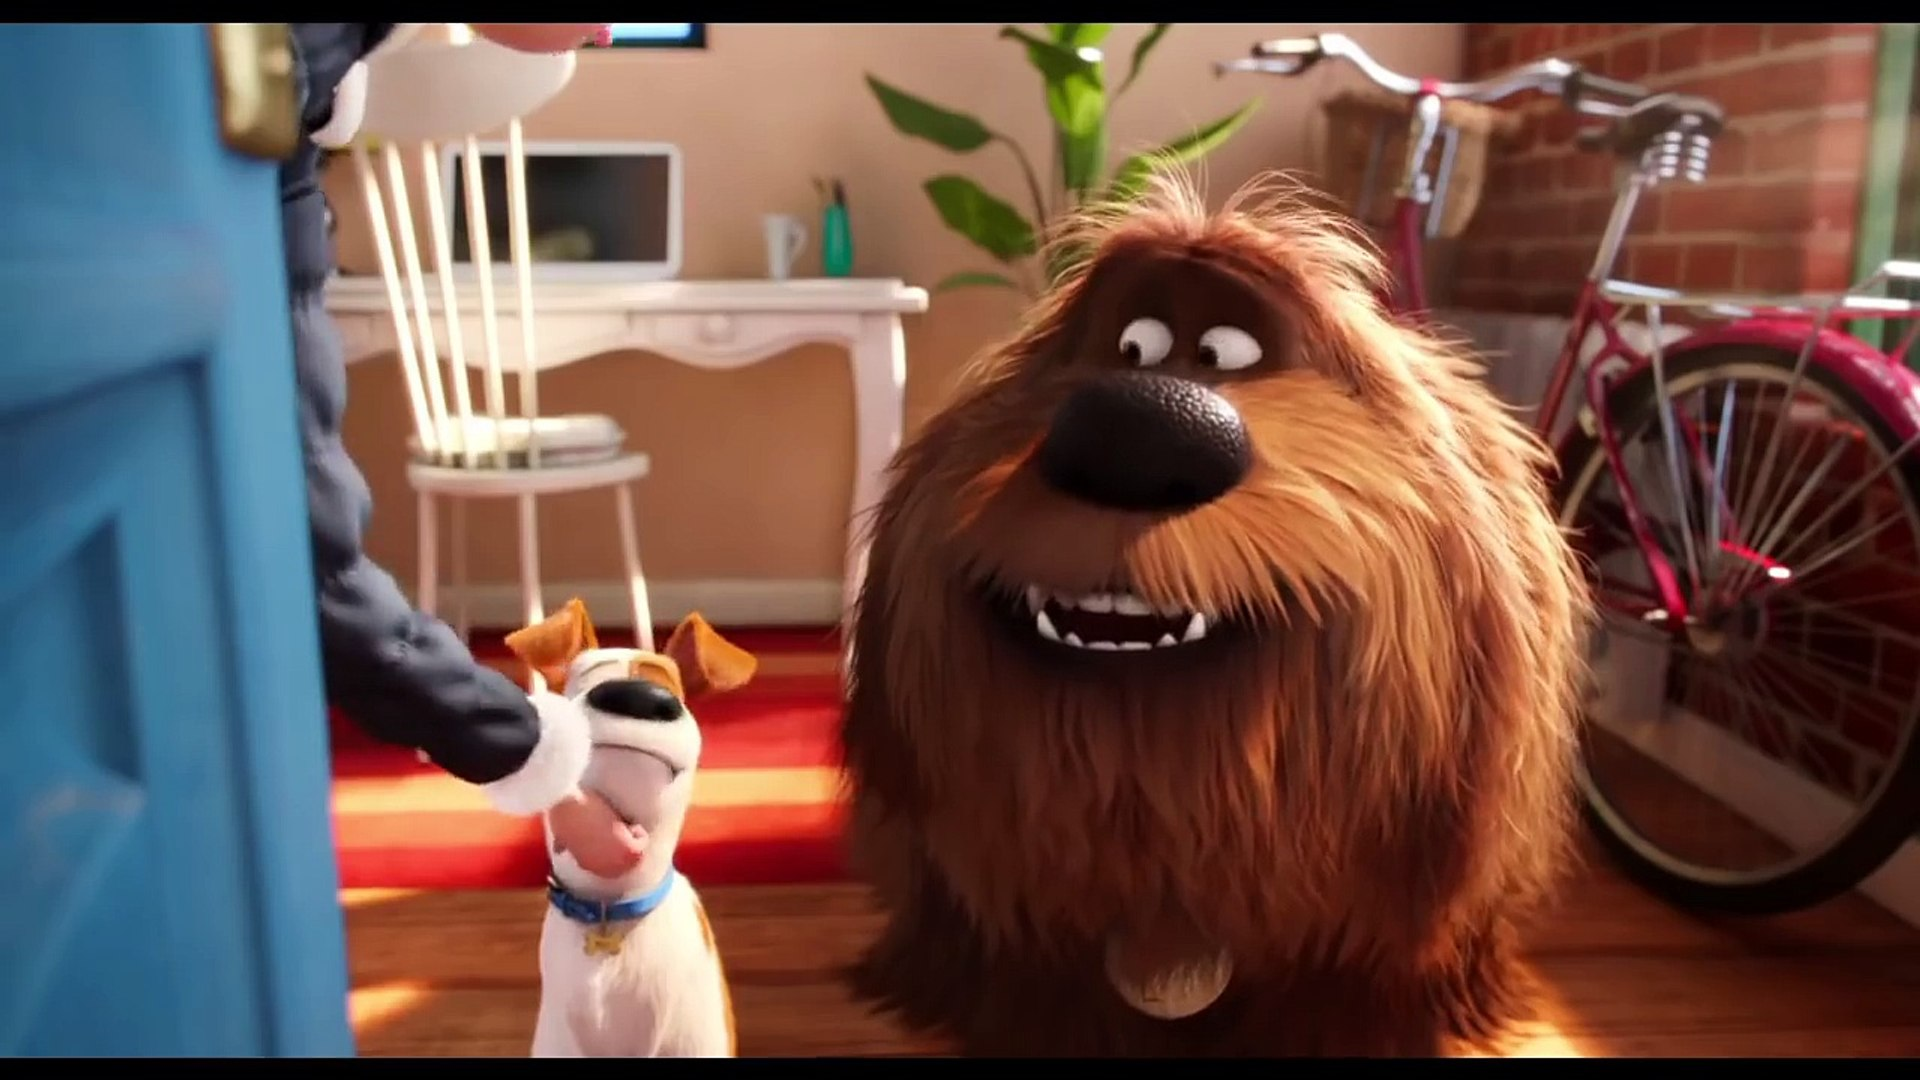 THE SECRET LIFE OF PETS Promo Clip - Know What Your Pets Are Up To (2016) Animated Comedy Movie HD